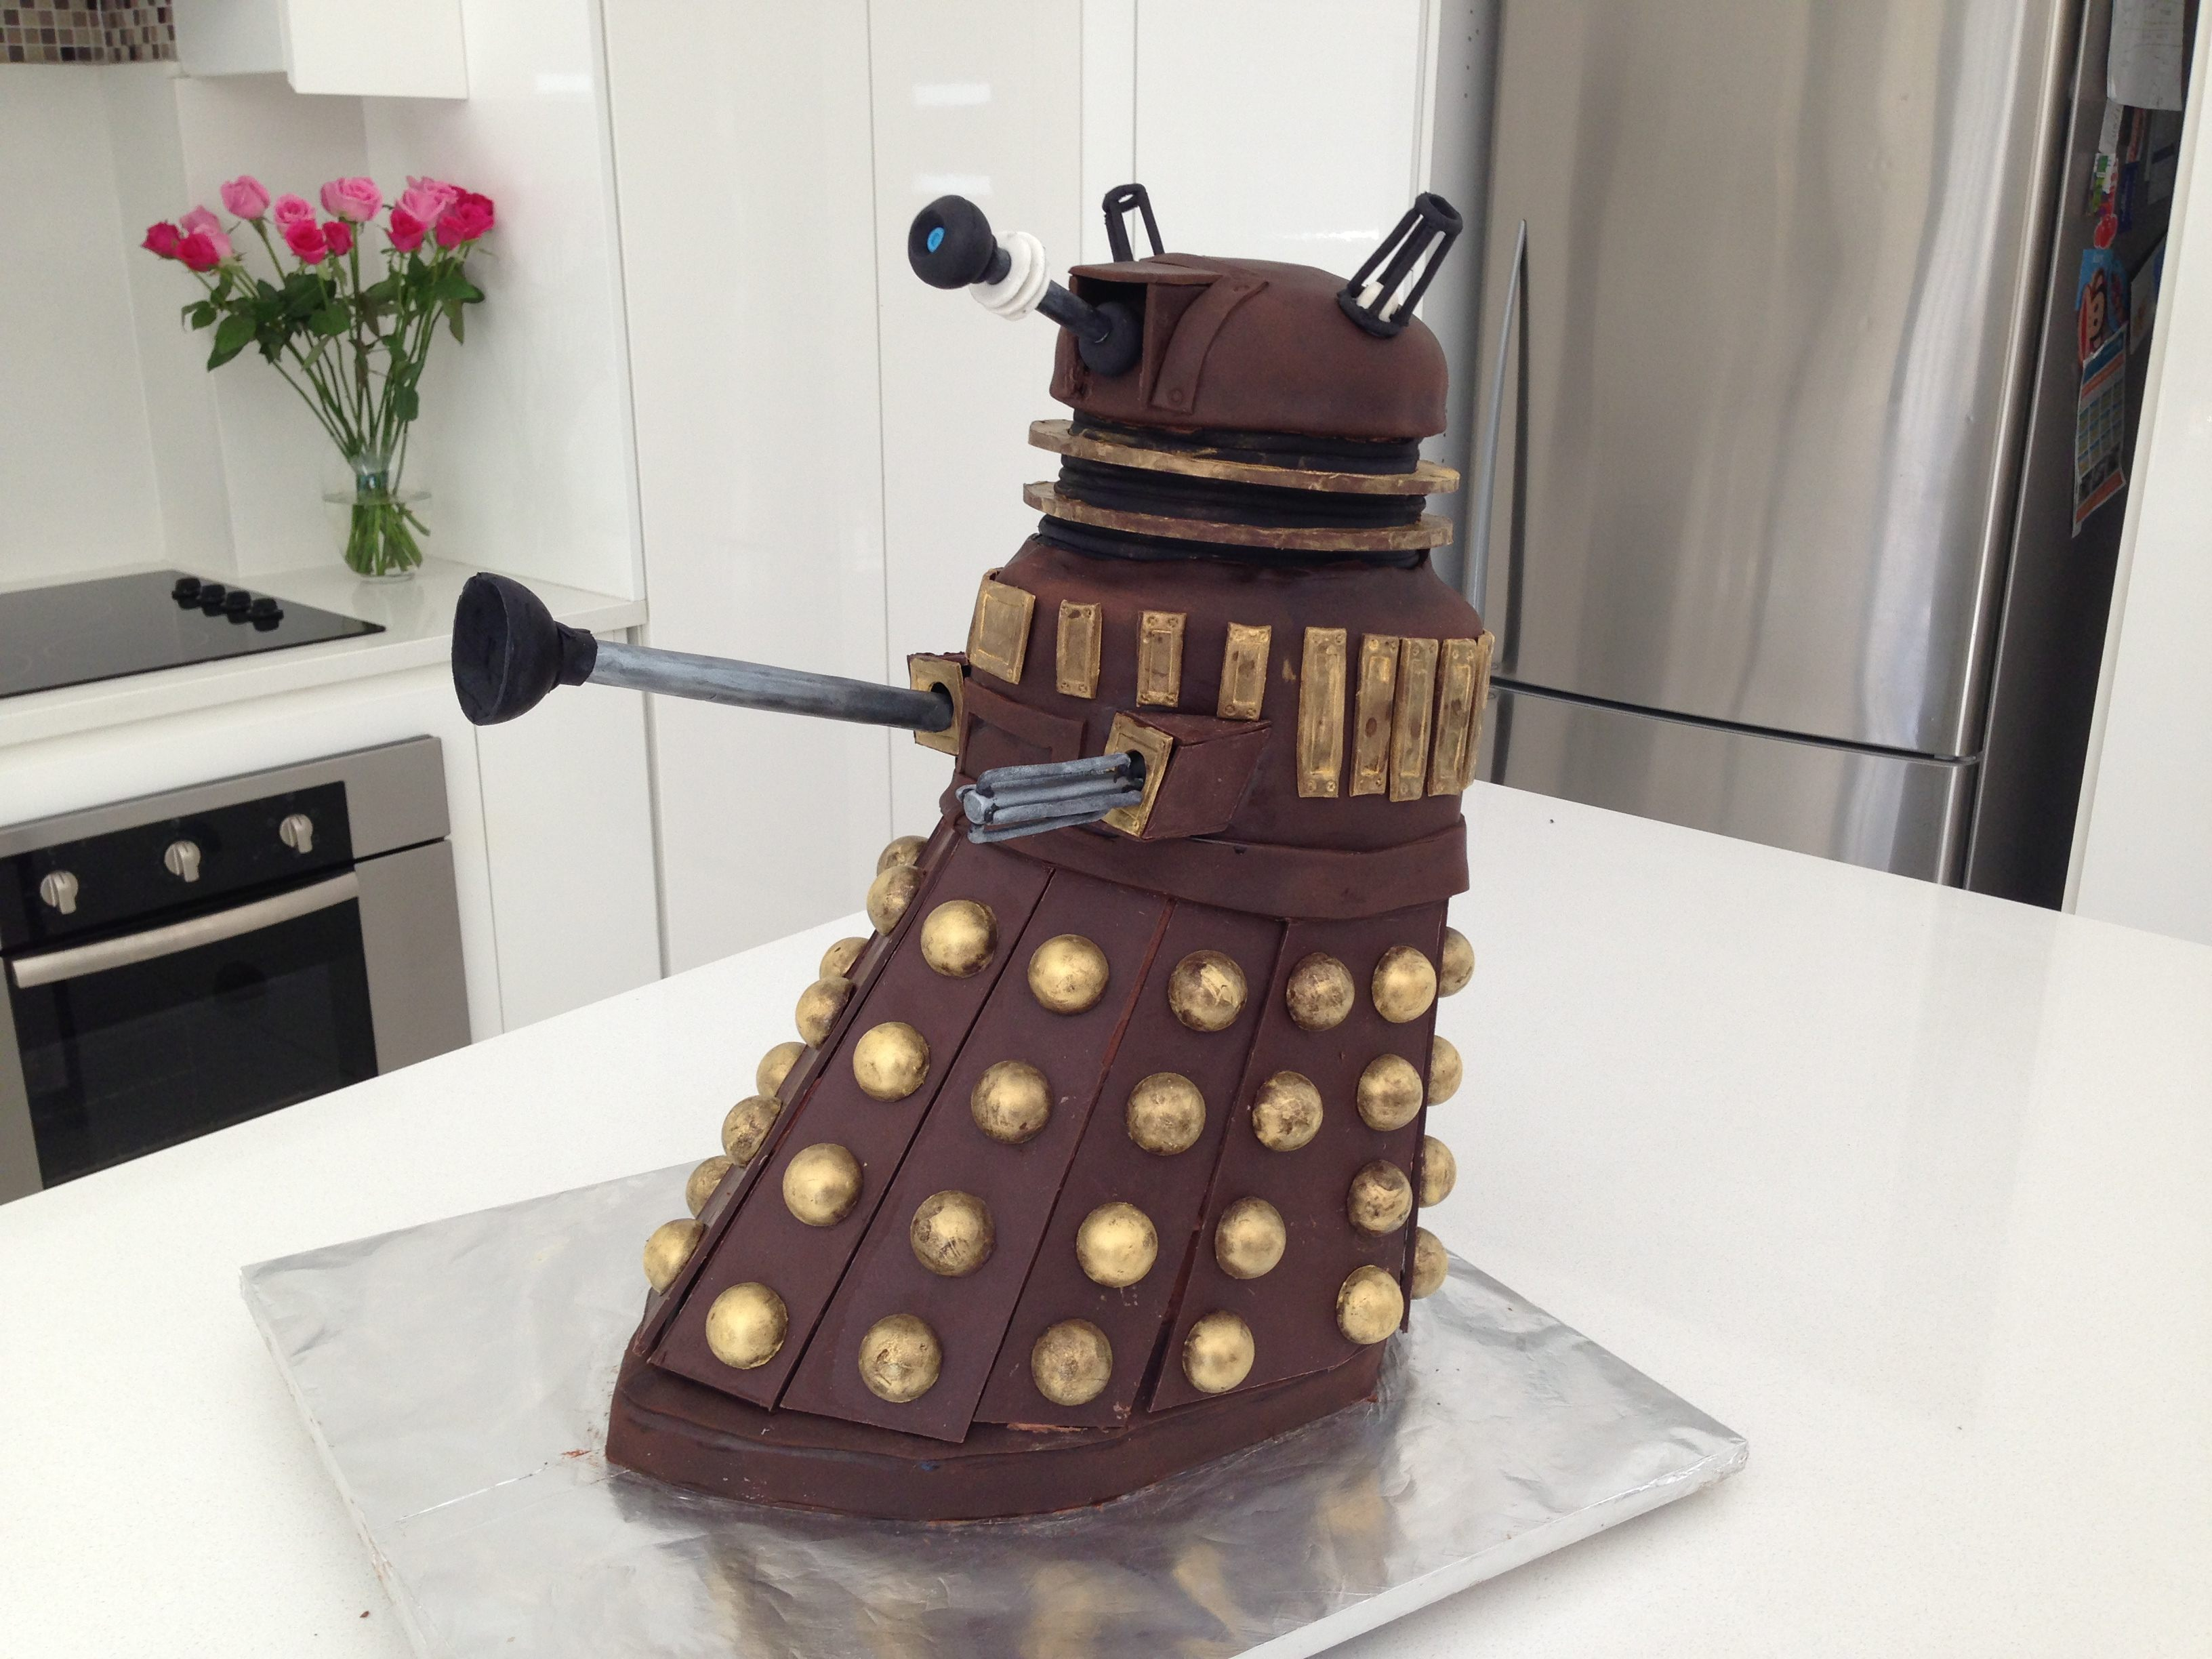 Howtocookthat cakes dessert chocolate dr who dalek for Tardis template for cake